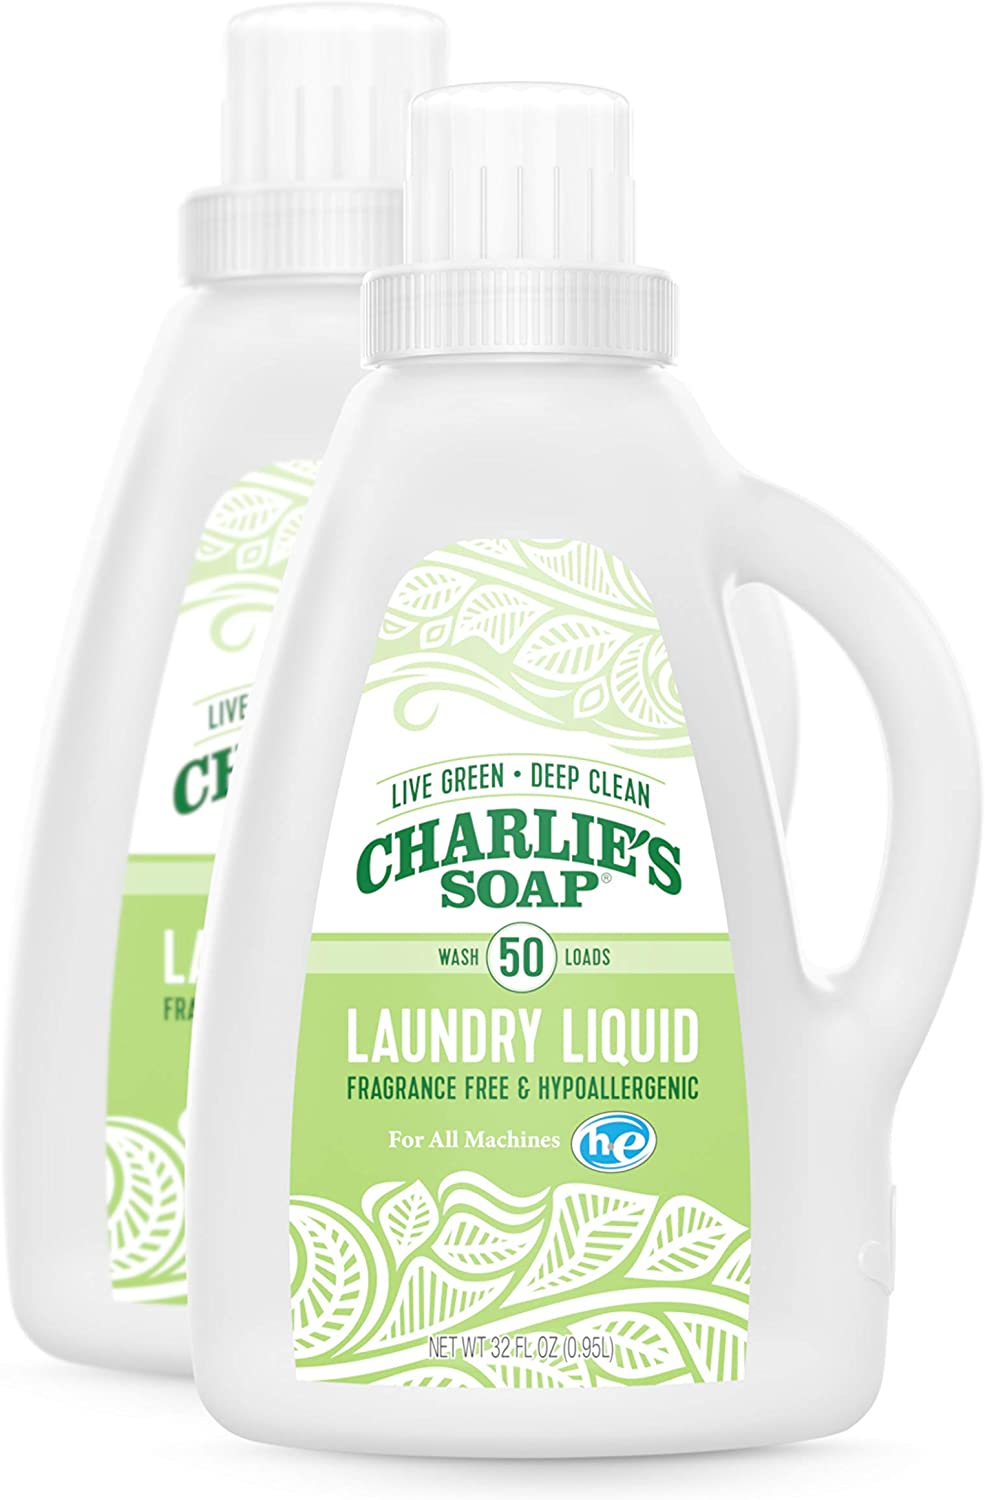 Charlie's Soap Laundry Liquid (50 Loads, 2 Pack) Natural Deep Cleaning Hypoallergenic Laundry Detergent – Safe, Effective and Non-Toxic